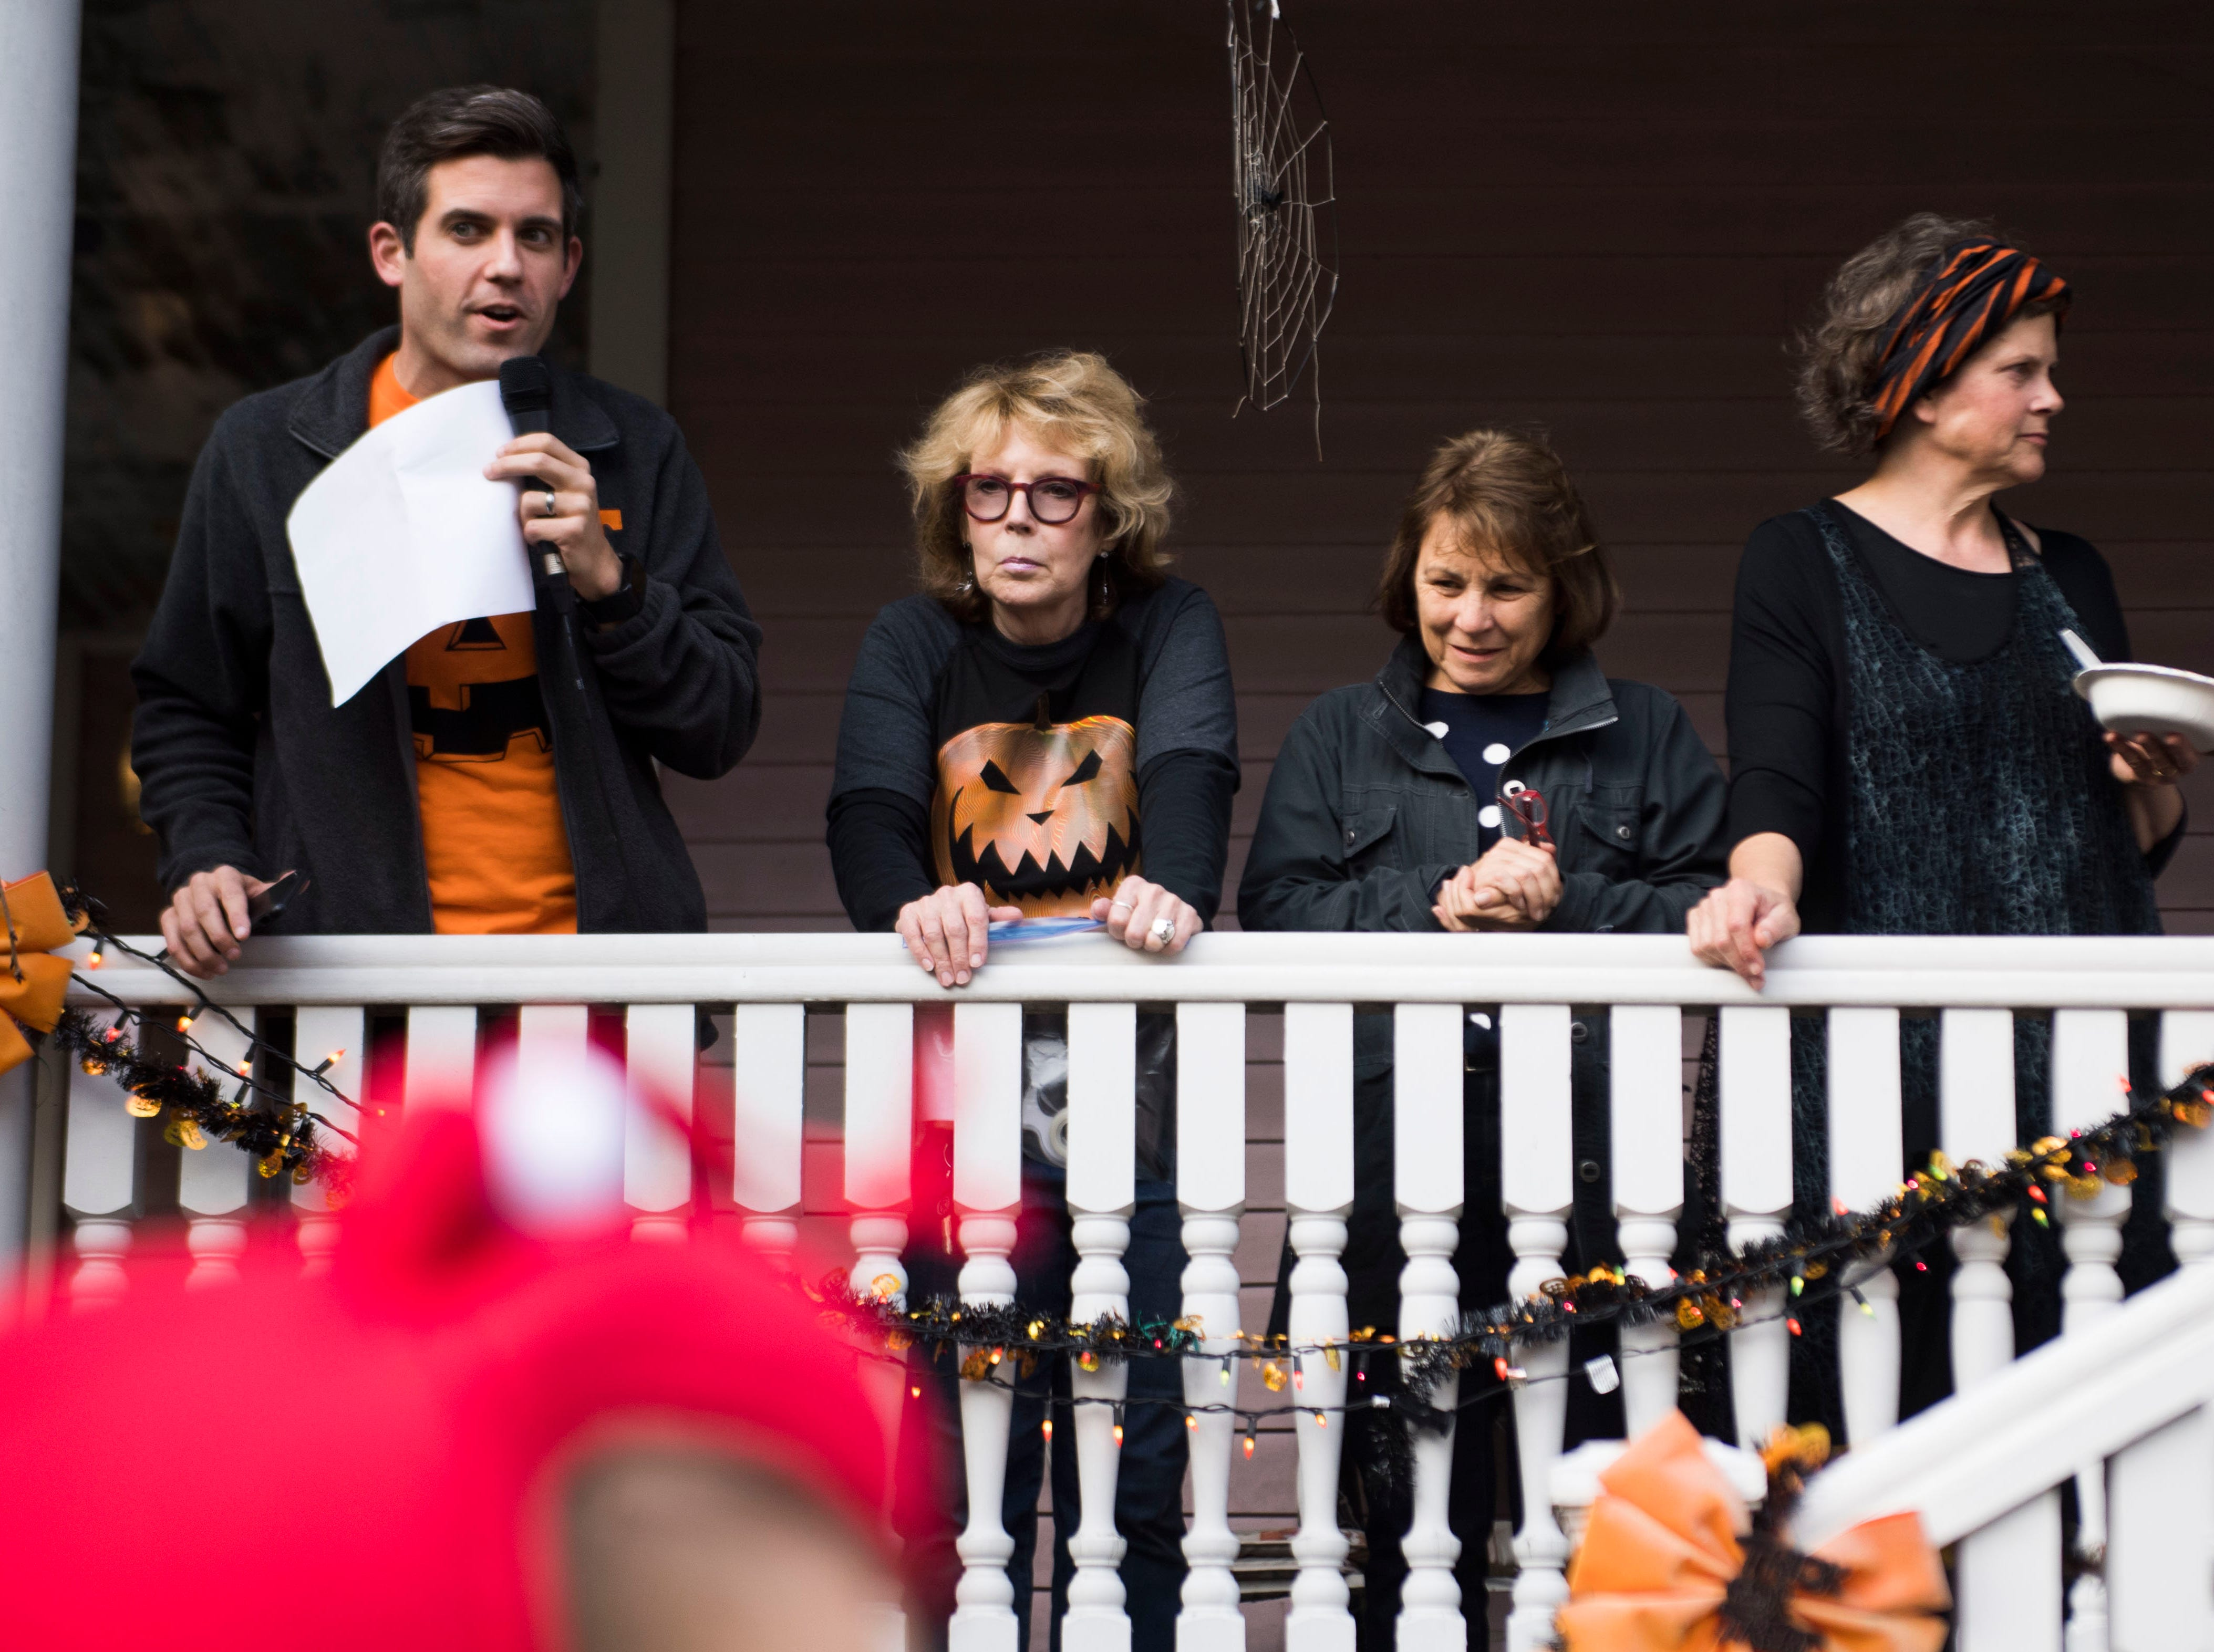 Judges for a Halloween costume contest survey participants at  Fourth and Gill's neighborhood Halloween party in Knoxville, Wed. Oct. 31, 2018.